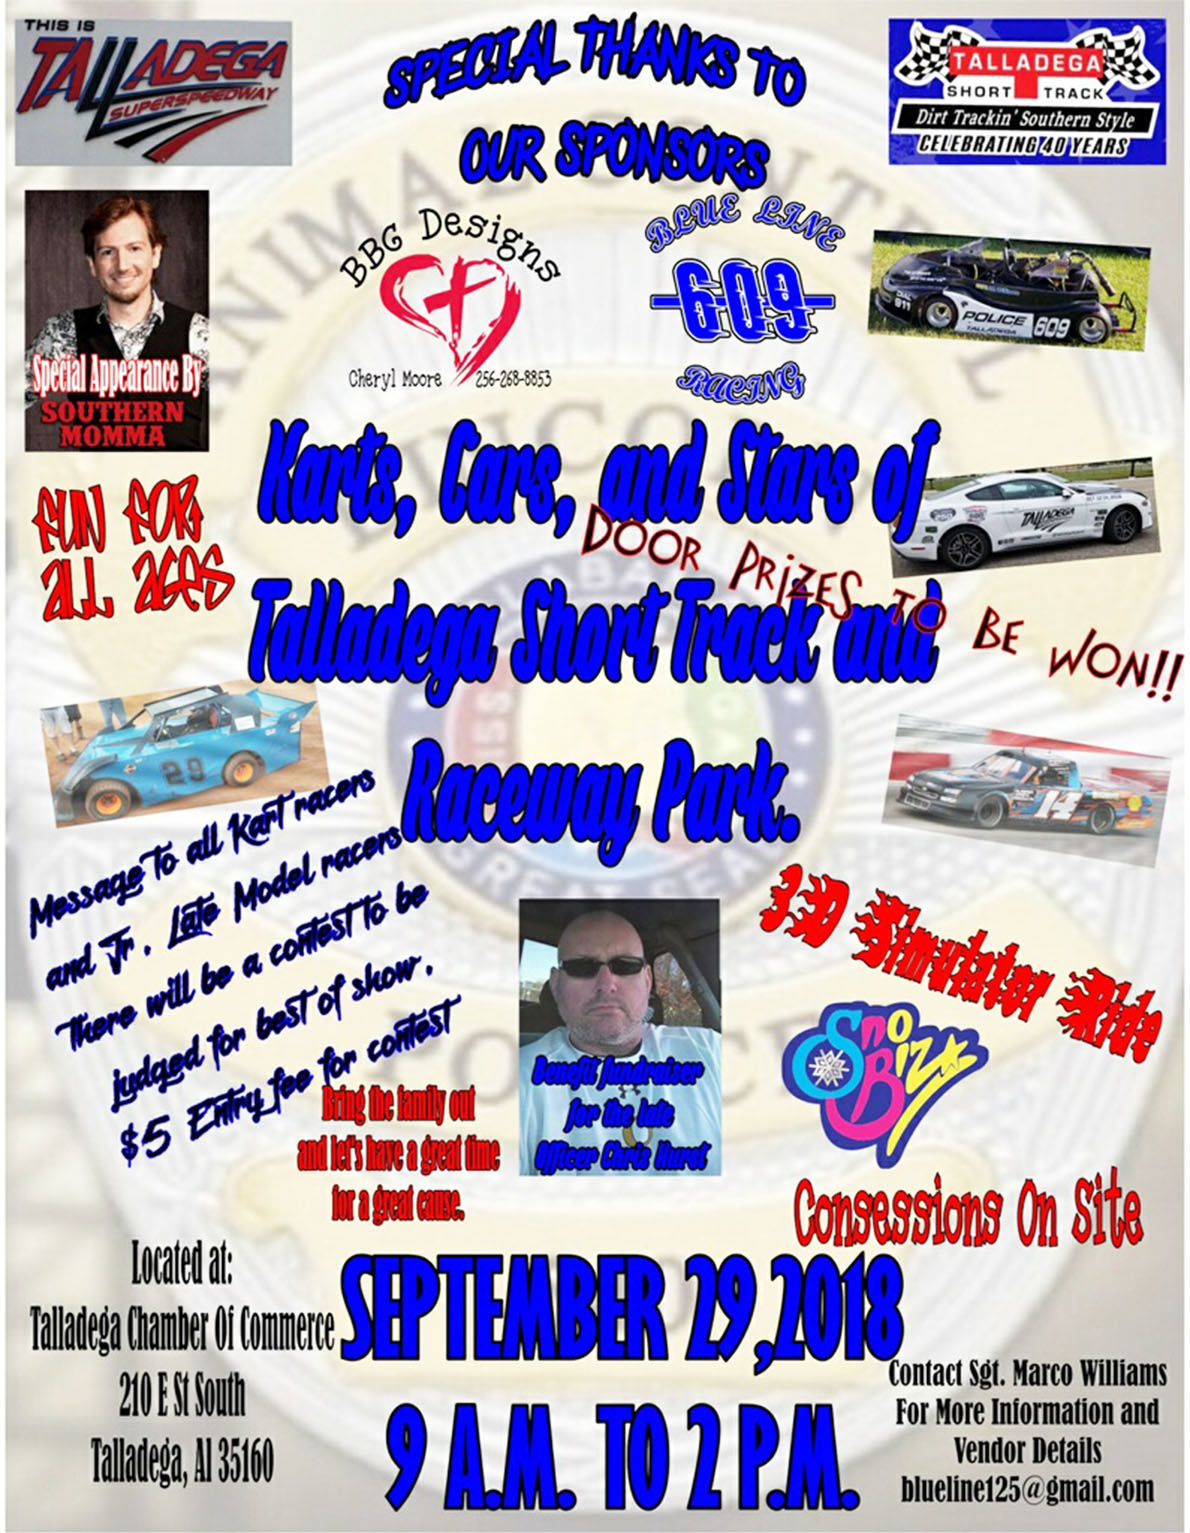 Flier for event to benefit family of late Chris Hurst